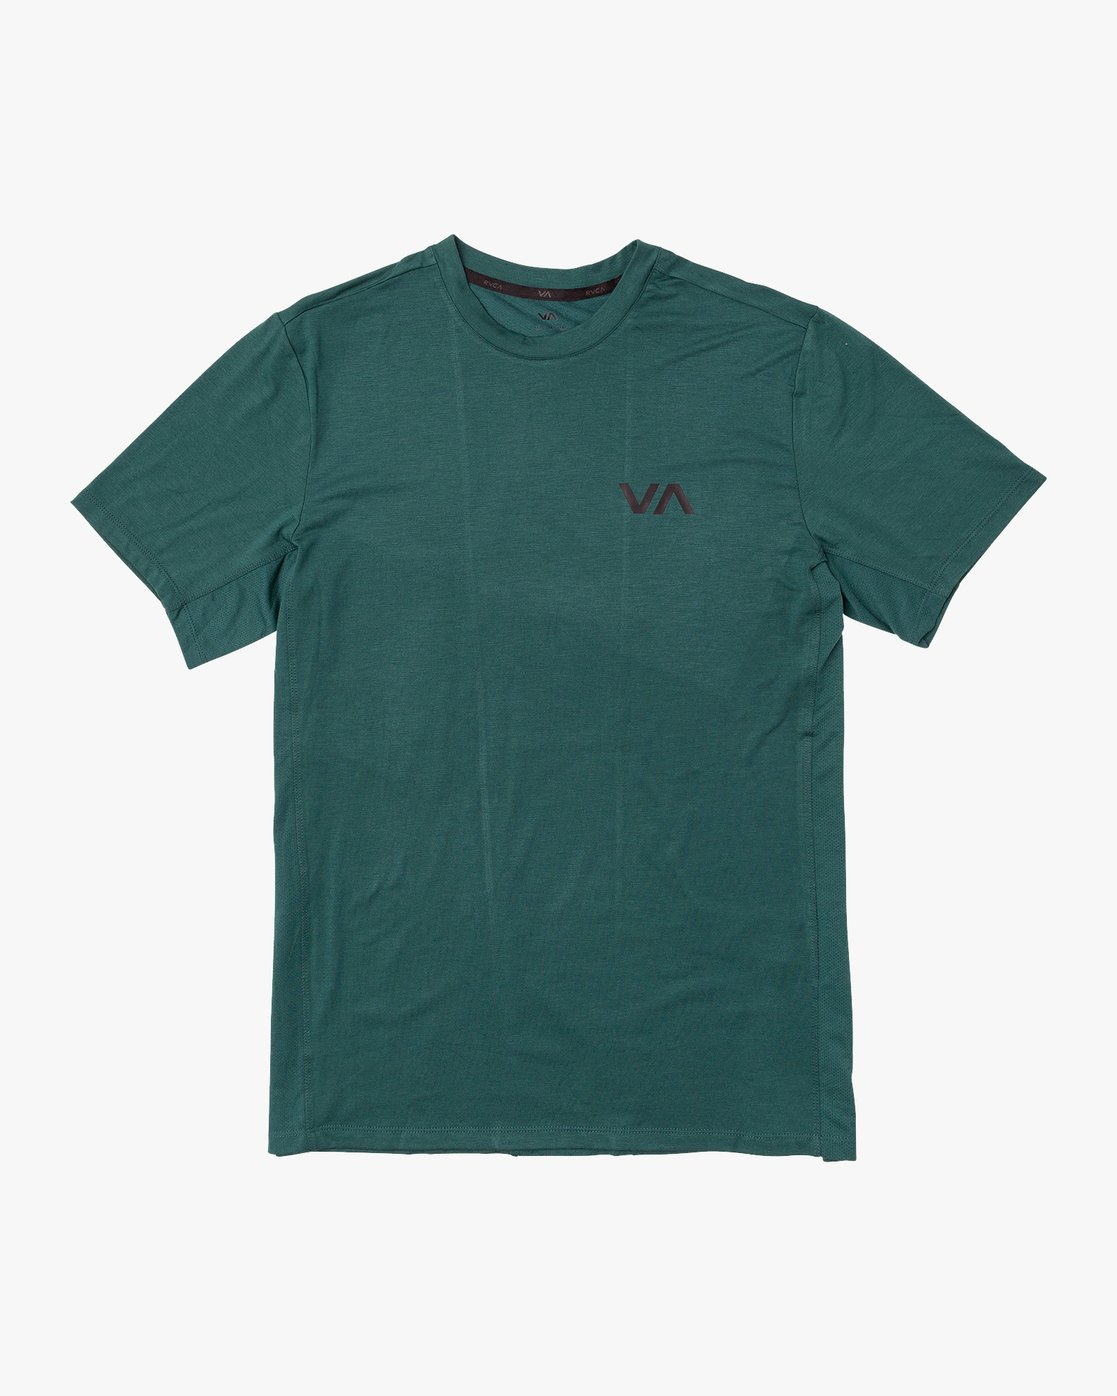 0 VA Vent Short Sleeve Top Blue V904QRVS RVCA